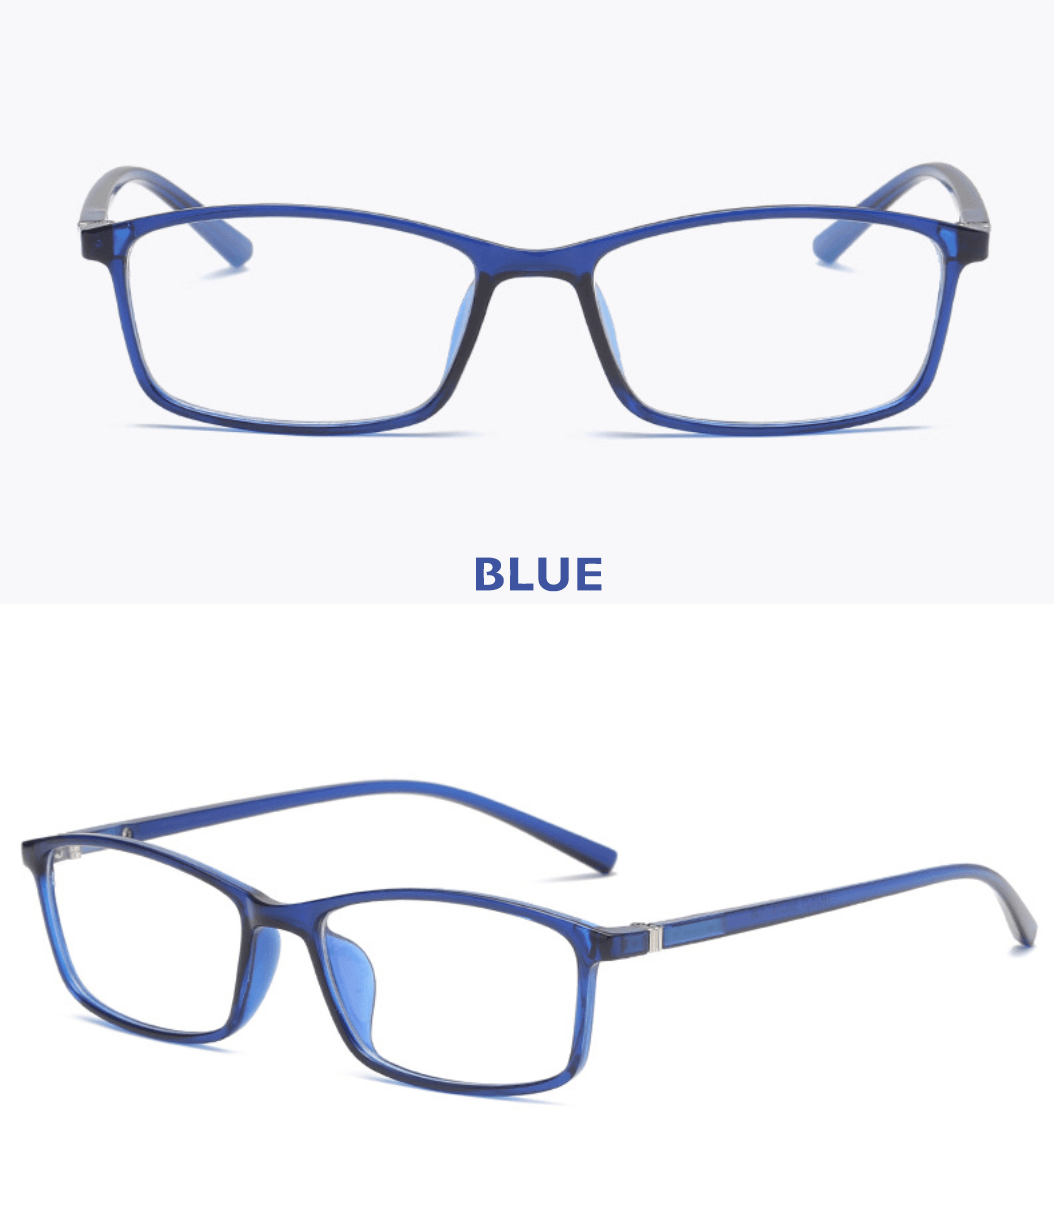 All-Round Protective Anti Blue Light & UV Glasses